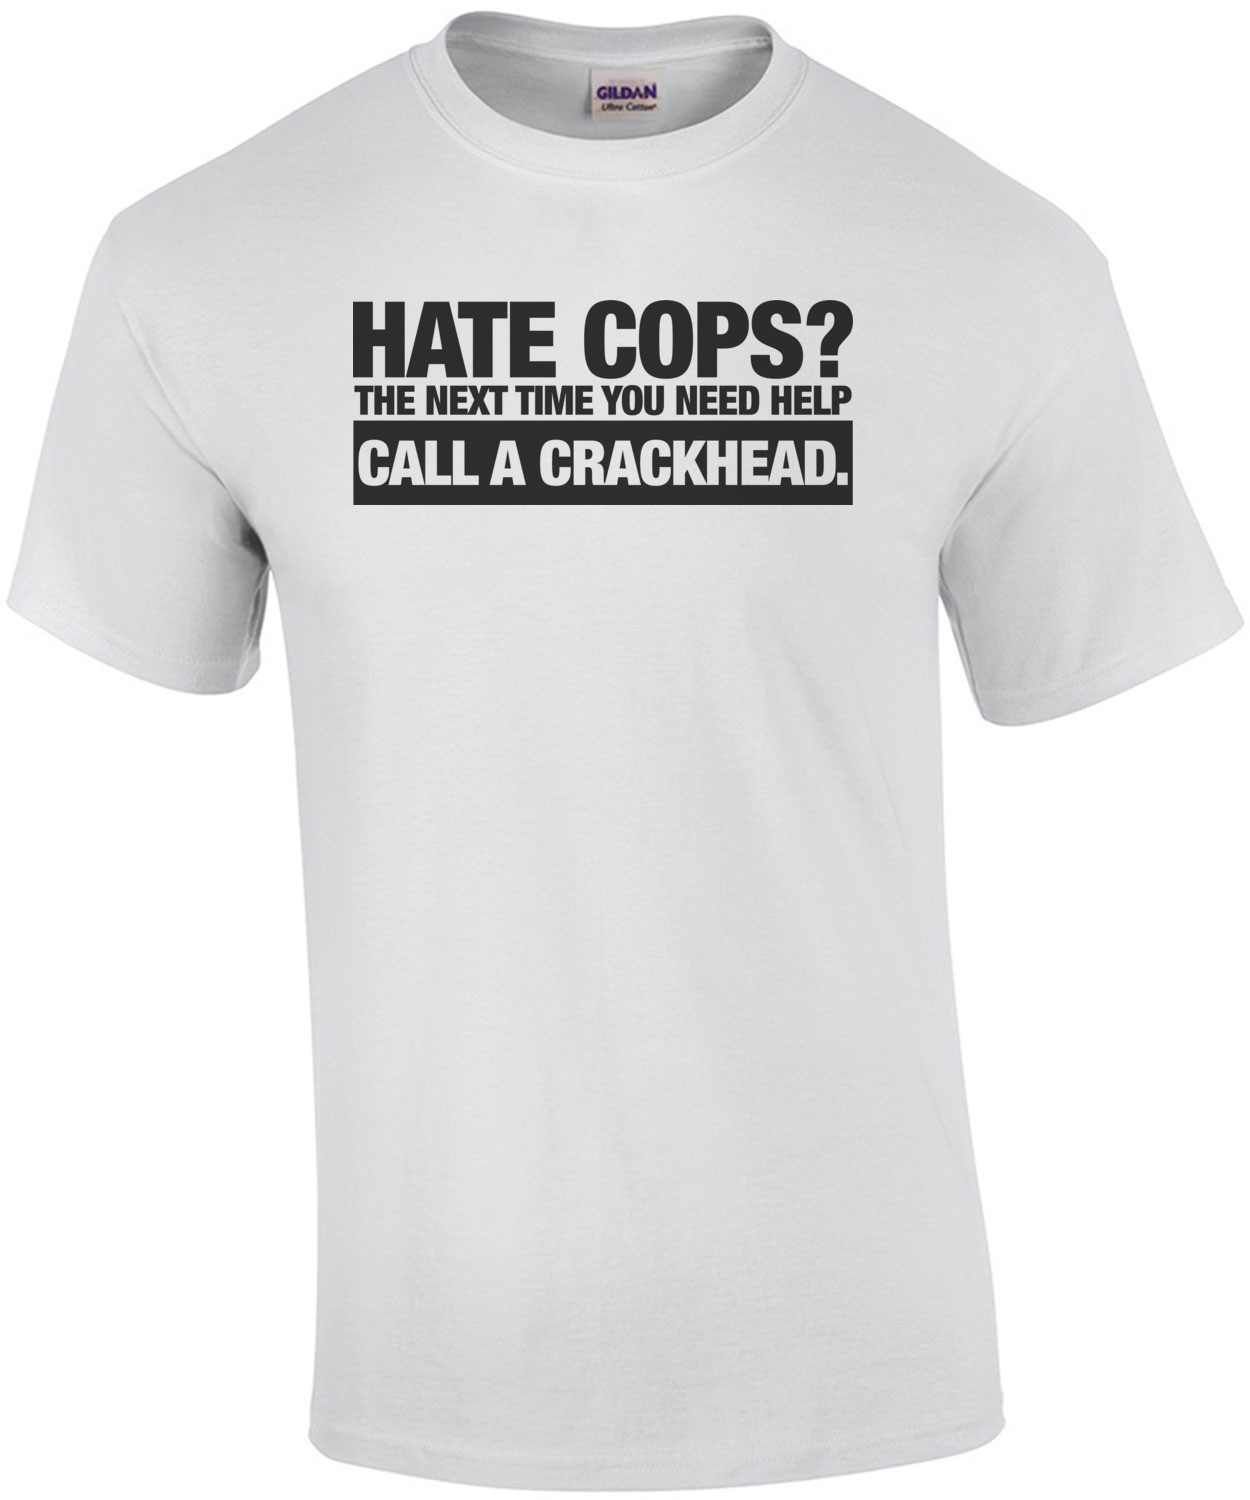 Hate Cops? Next Time You're In Trouble Call a Crackhead T-Shirt